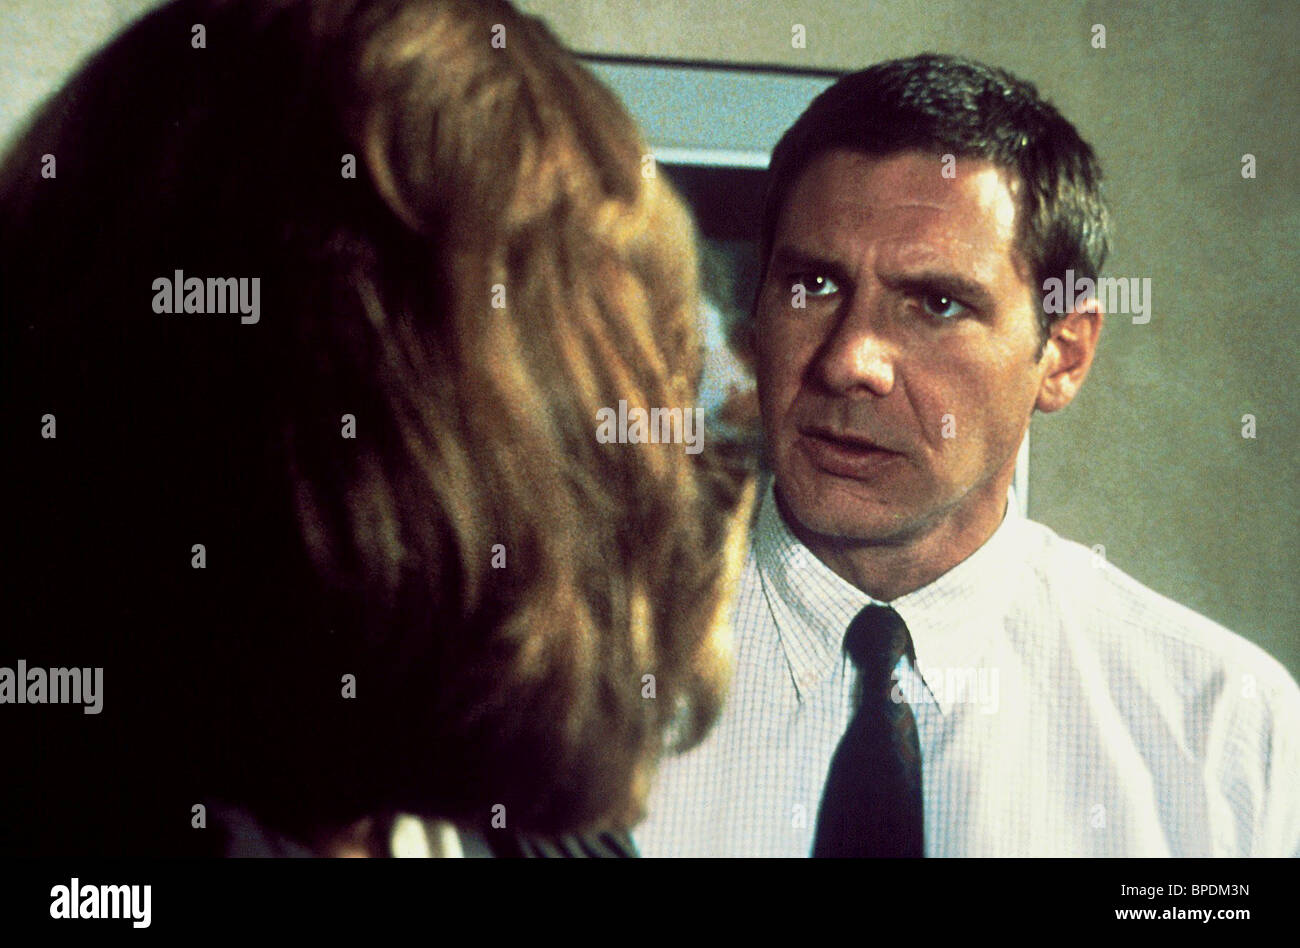 HARRISON FORD PRESUMED INNOCENT (1990 Stock Photo: 31033961 - Alamy